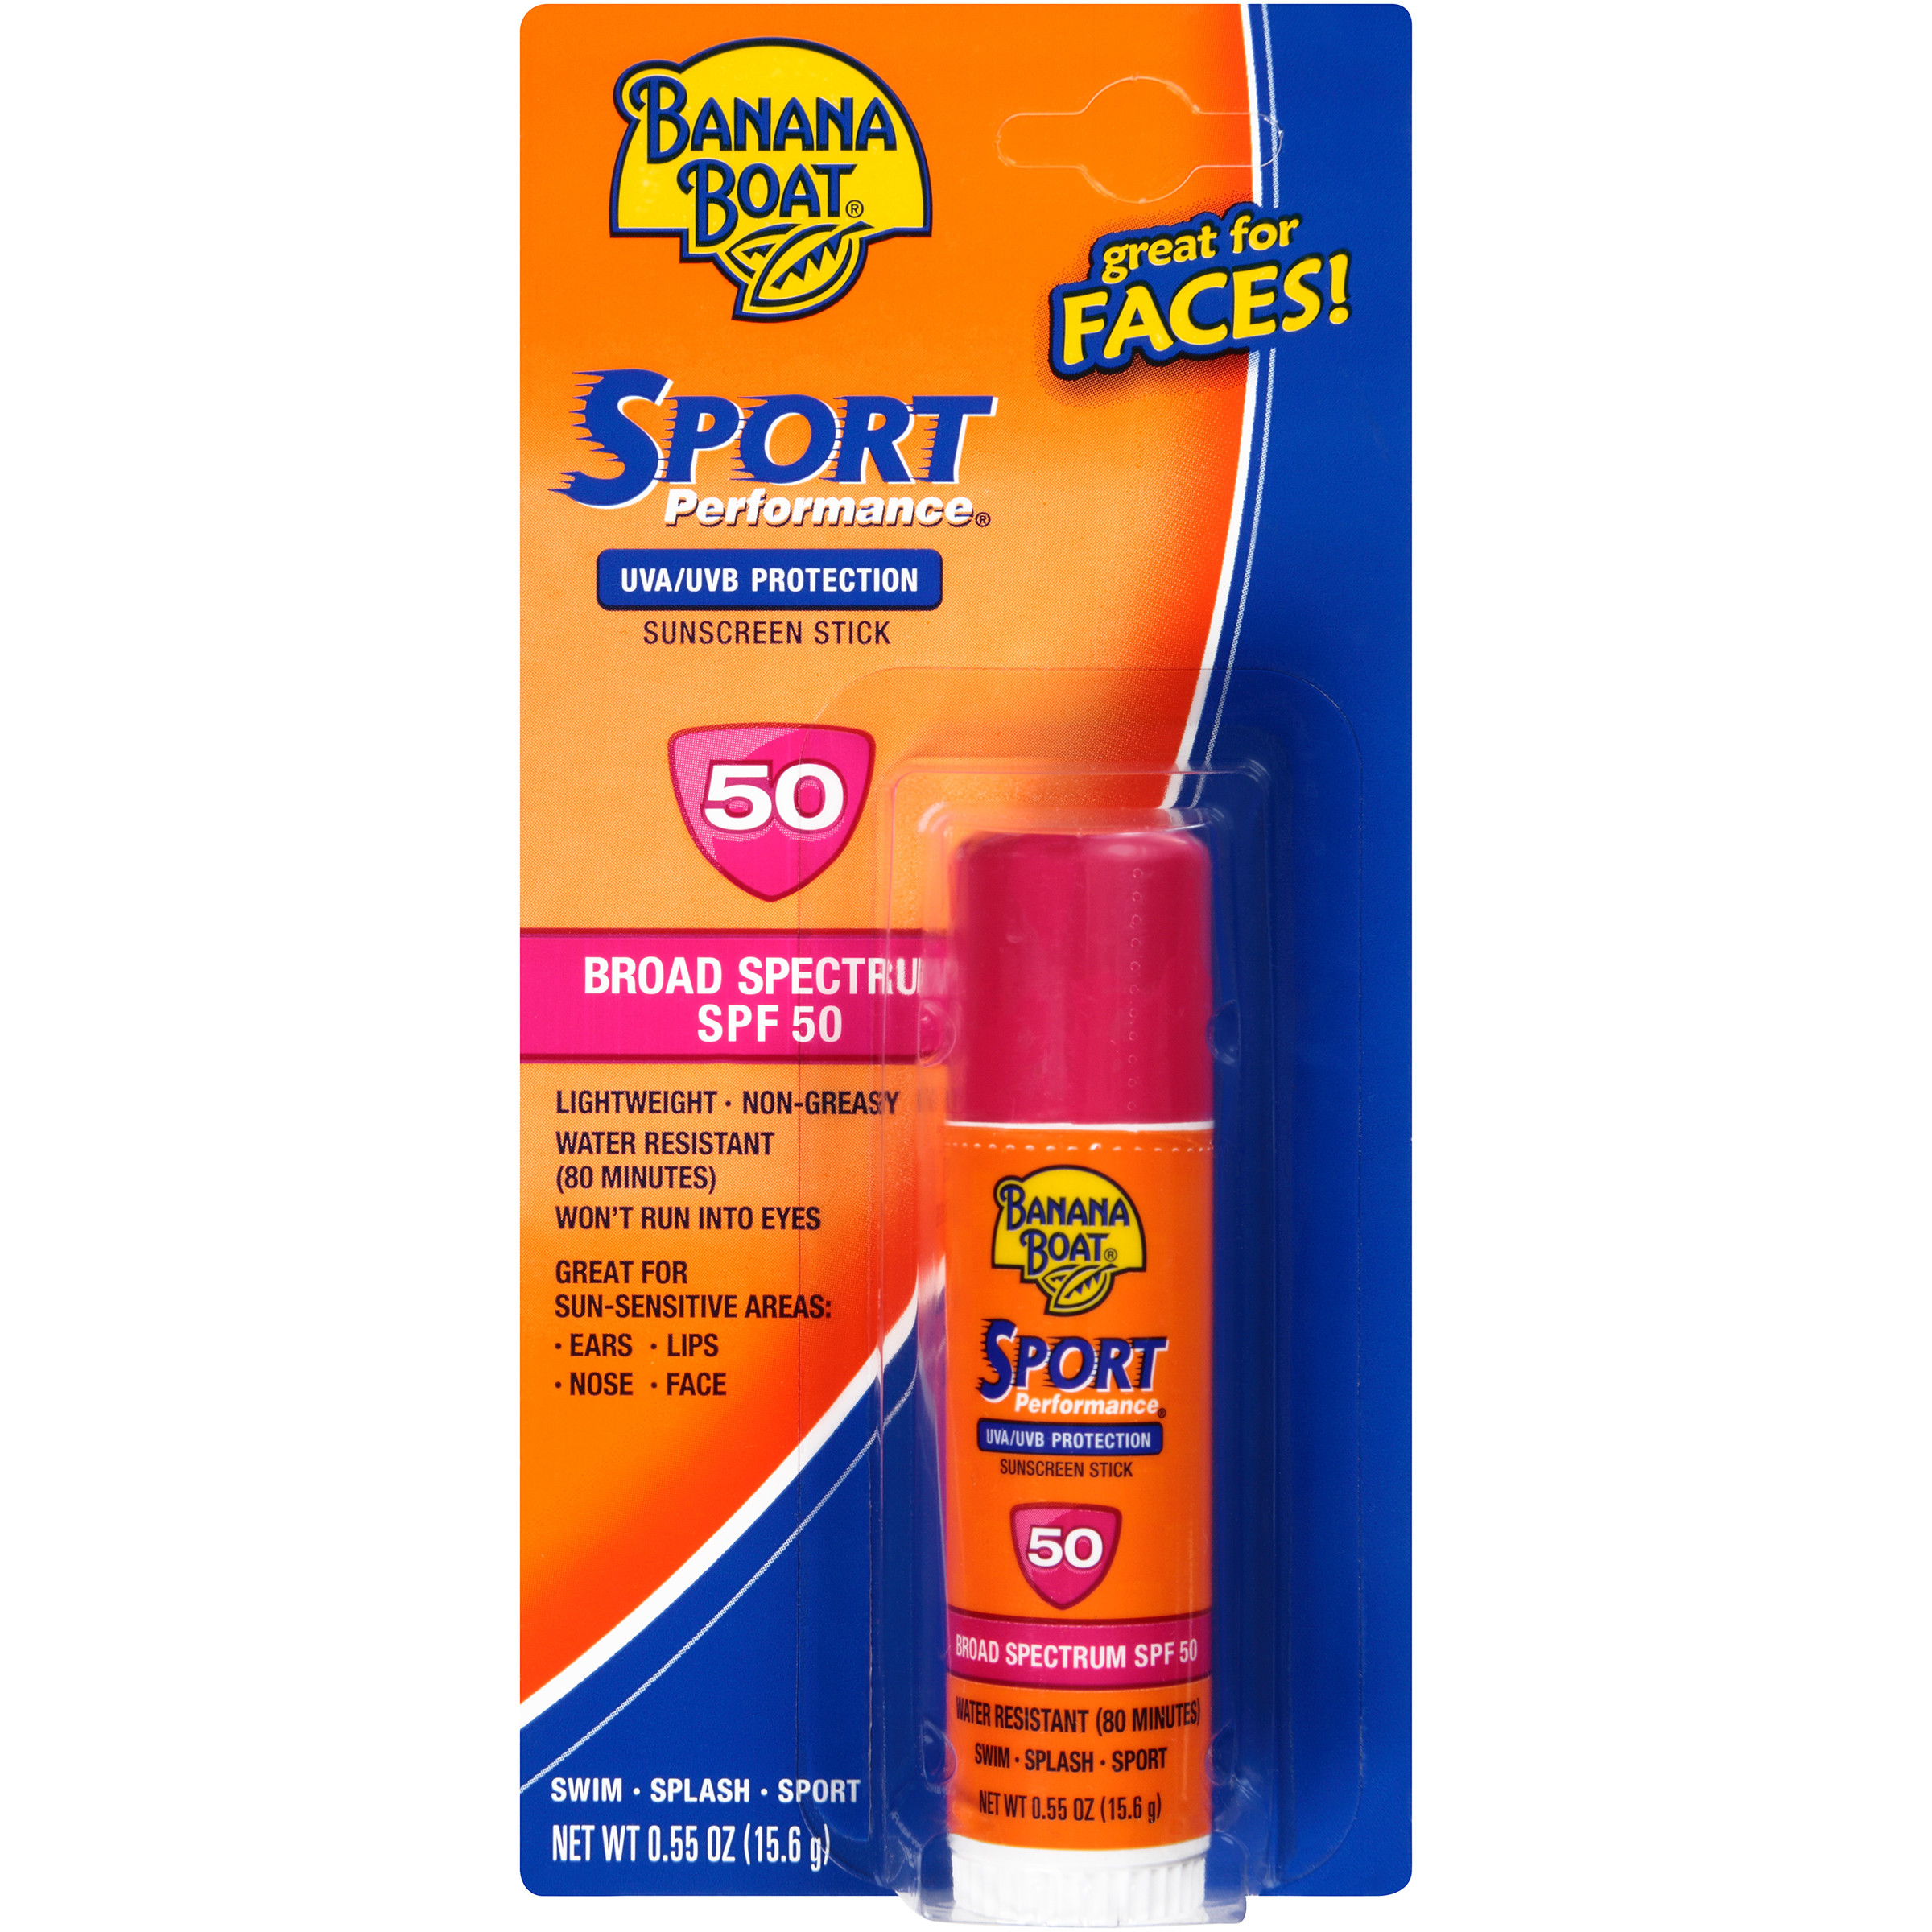 Banana Boat Sport Performance Face Sunscreen Stick Broad Spectrum SPF 50 - 0.55 Ounces